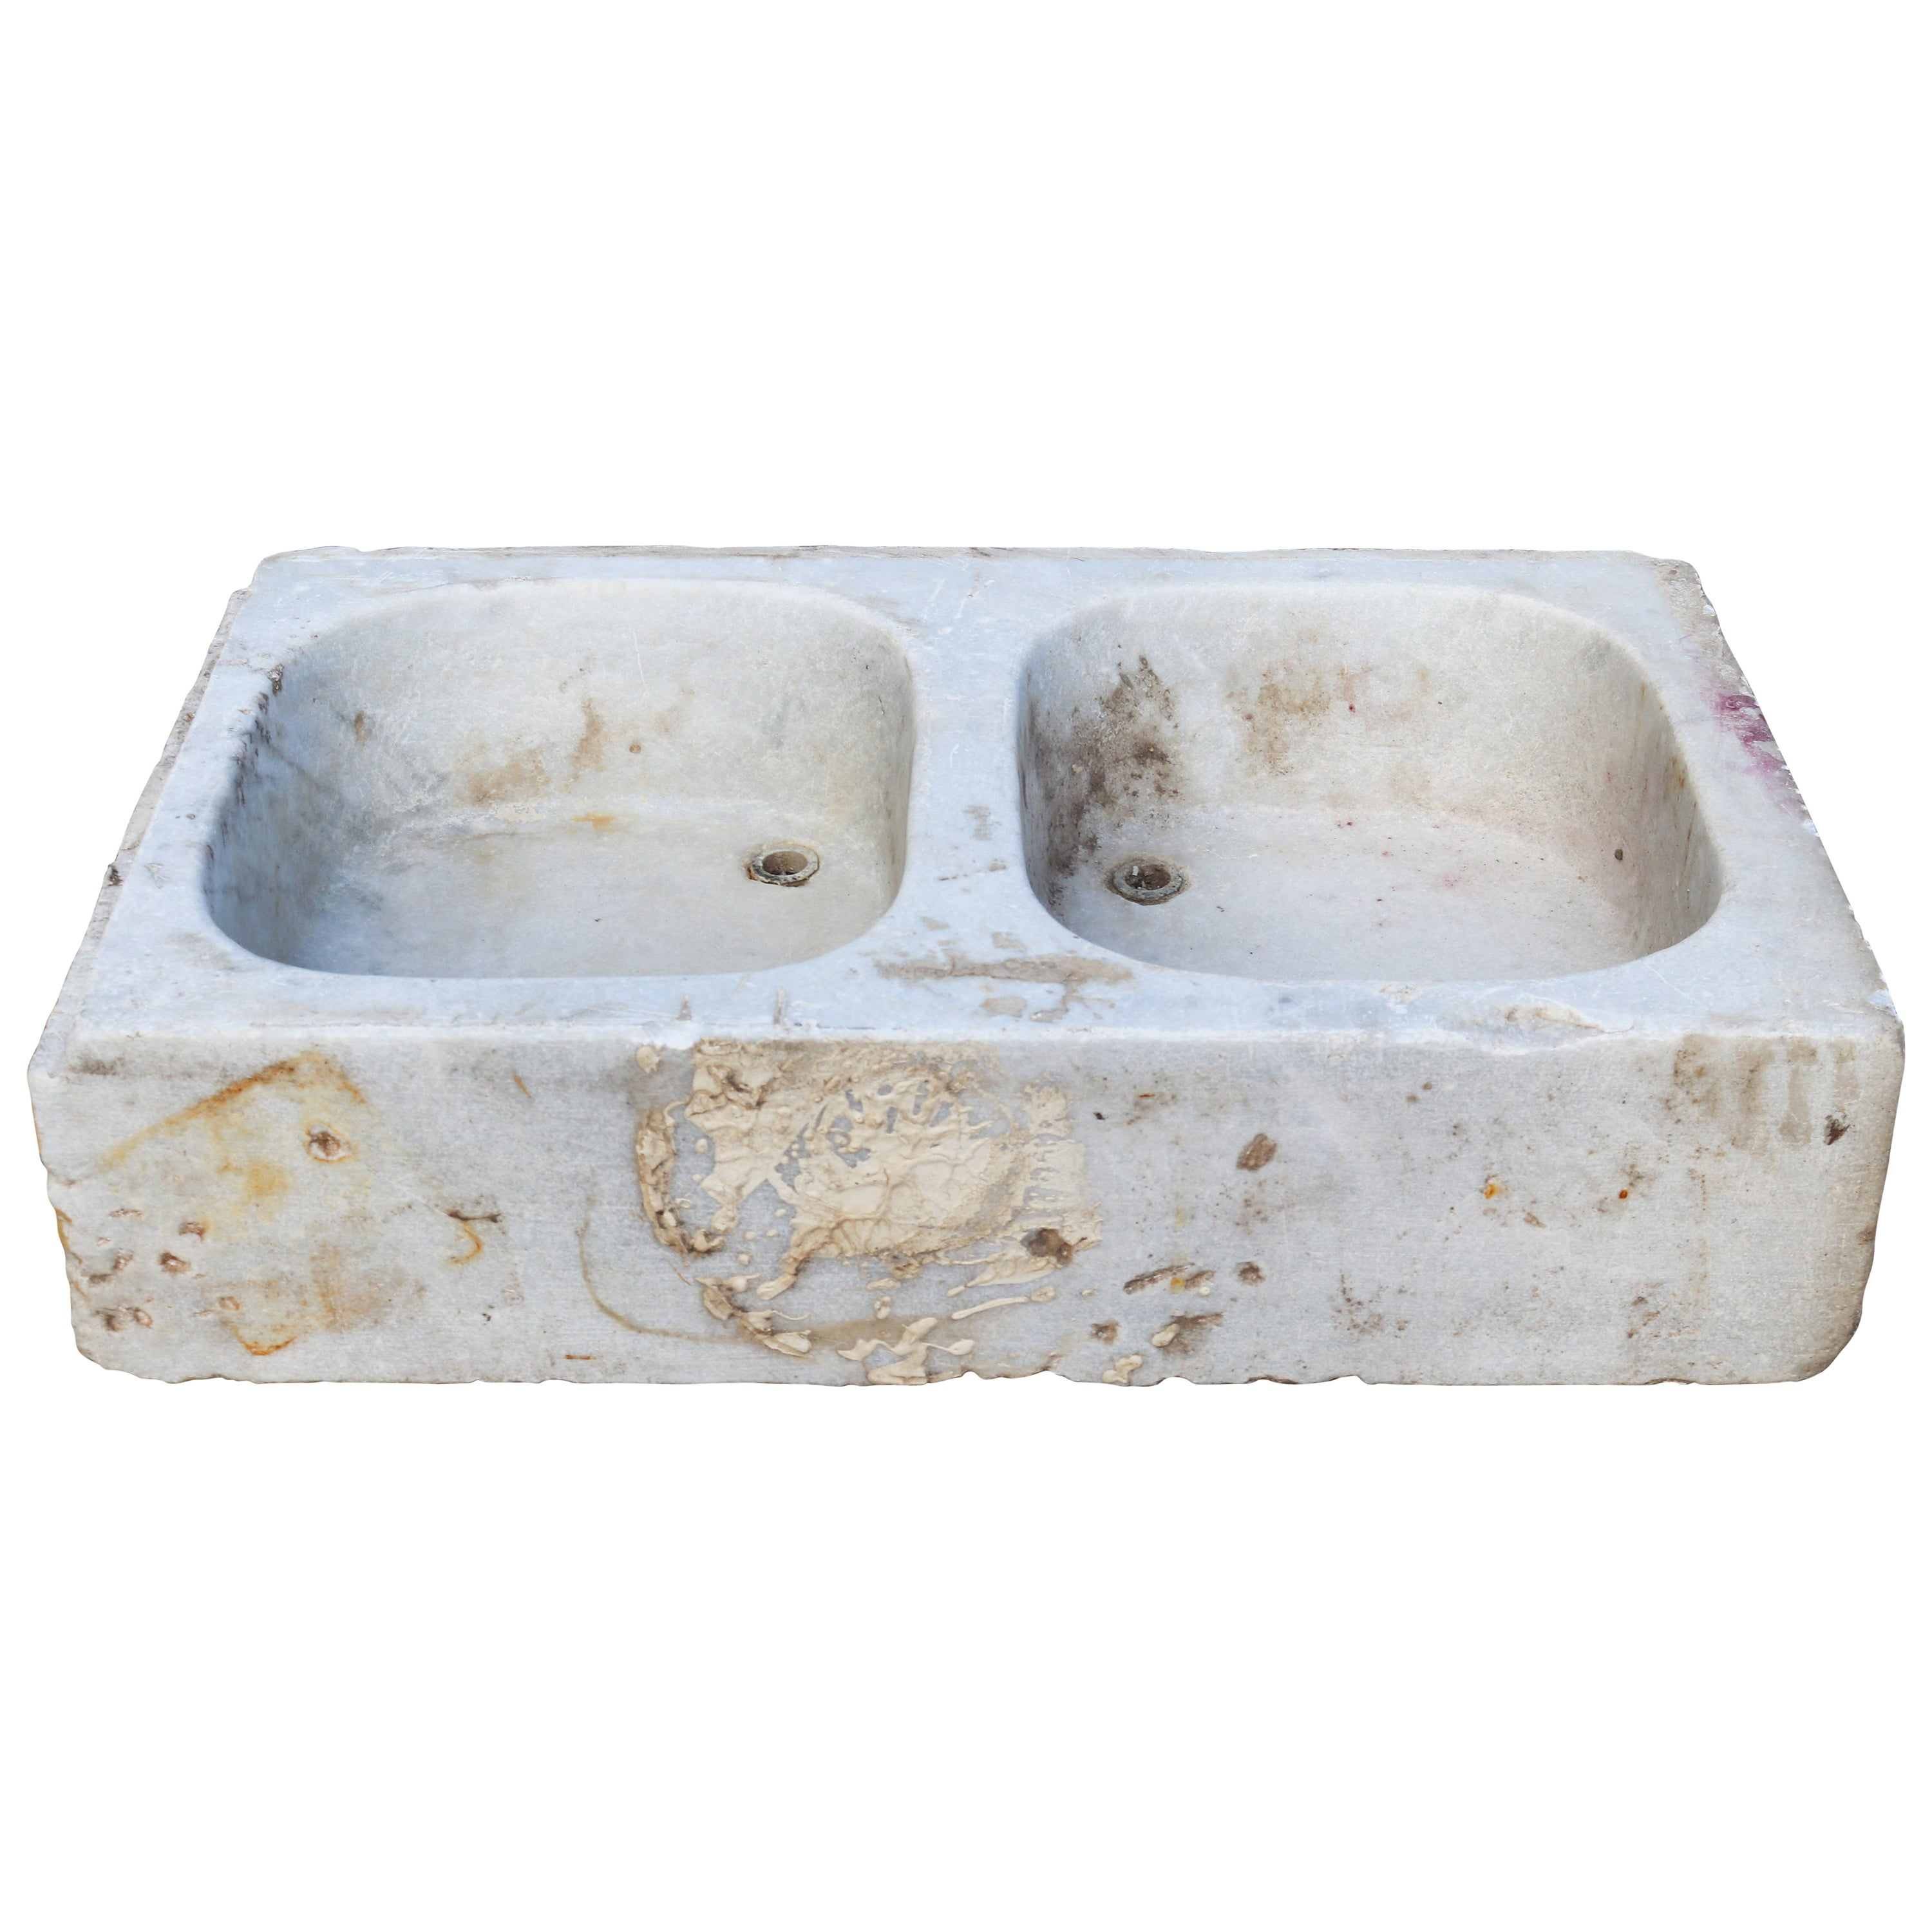 19th Century Antique Hand Carved White Marble Double Basin Kitchen Sink